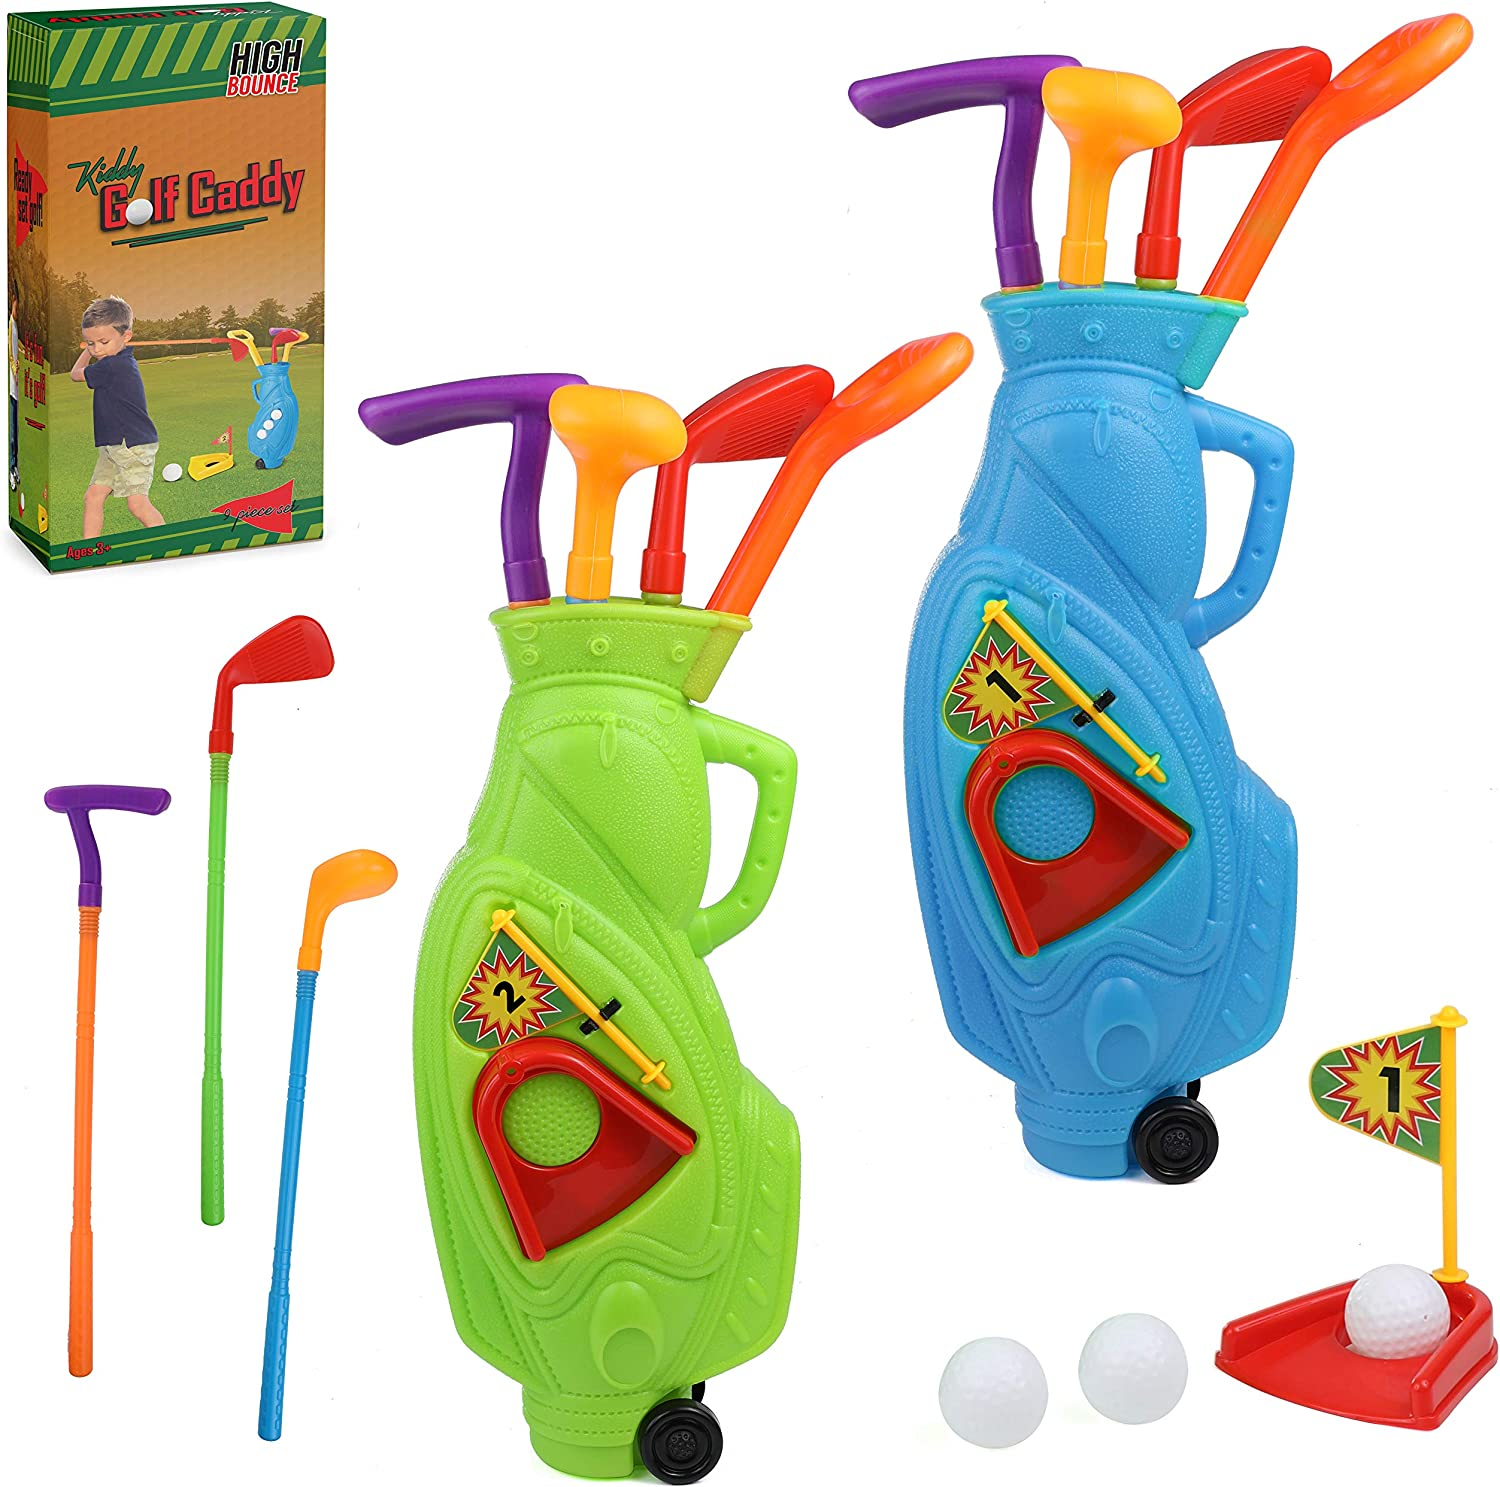 High Bounce Golf Club Set Golf Cart for Kids - 2 Golf Carts with Wheels, 3 Golf Clubs, 1 Practice Hole and 6 Balls